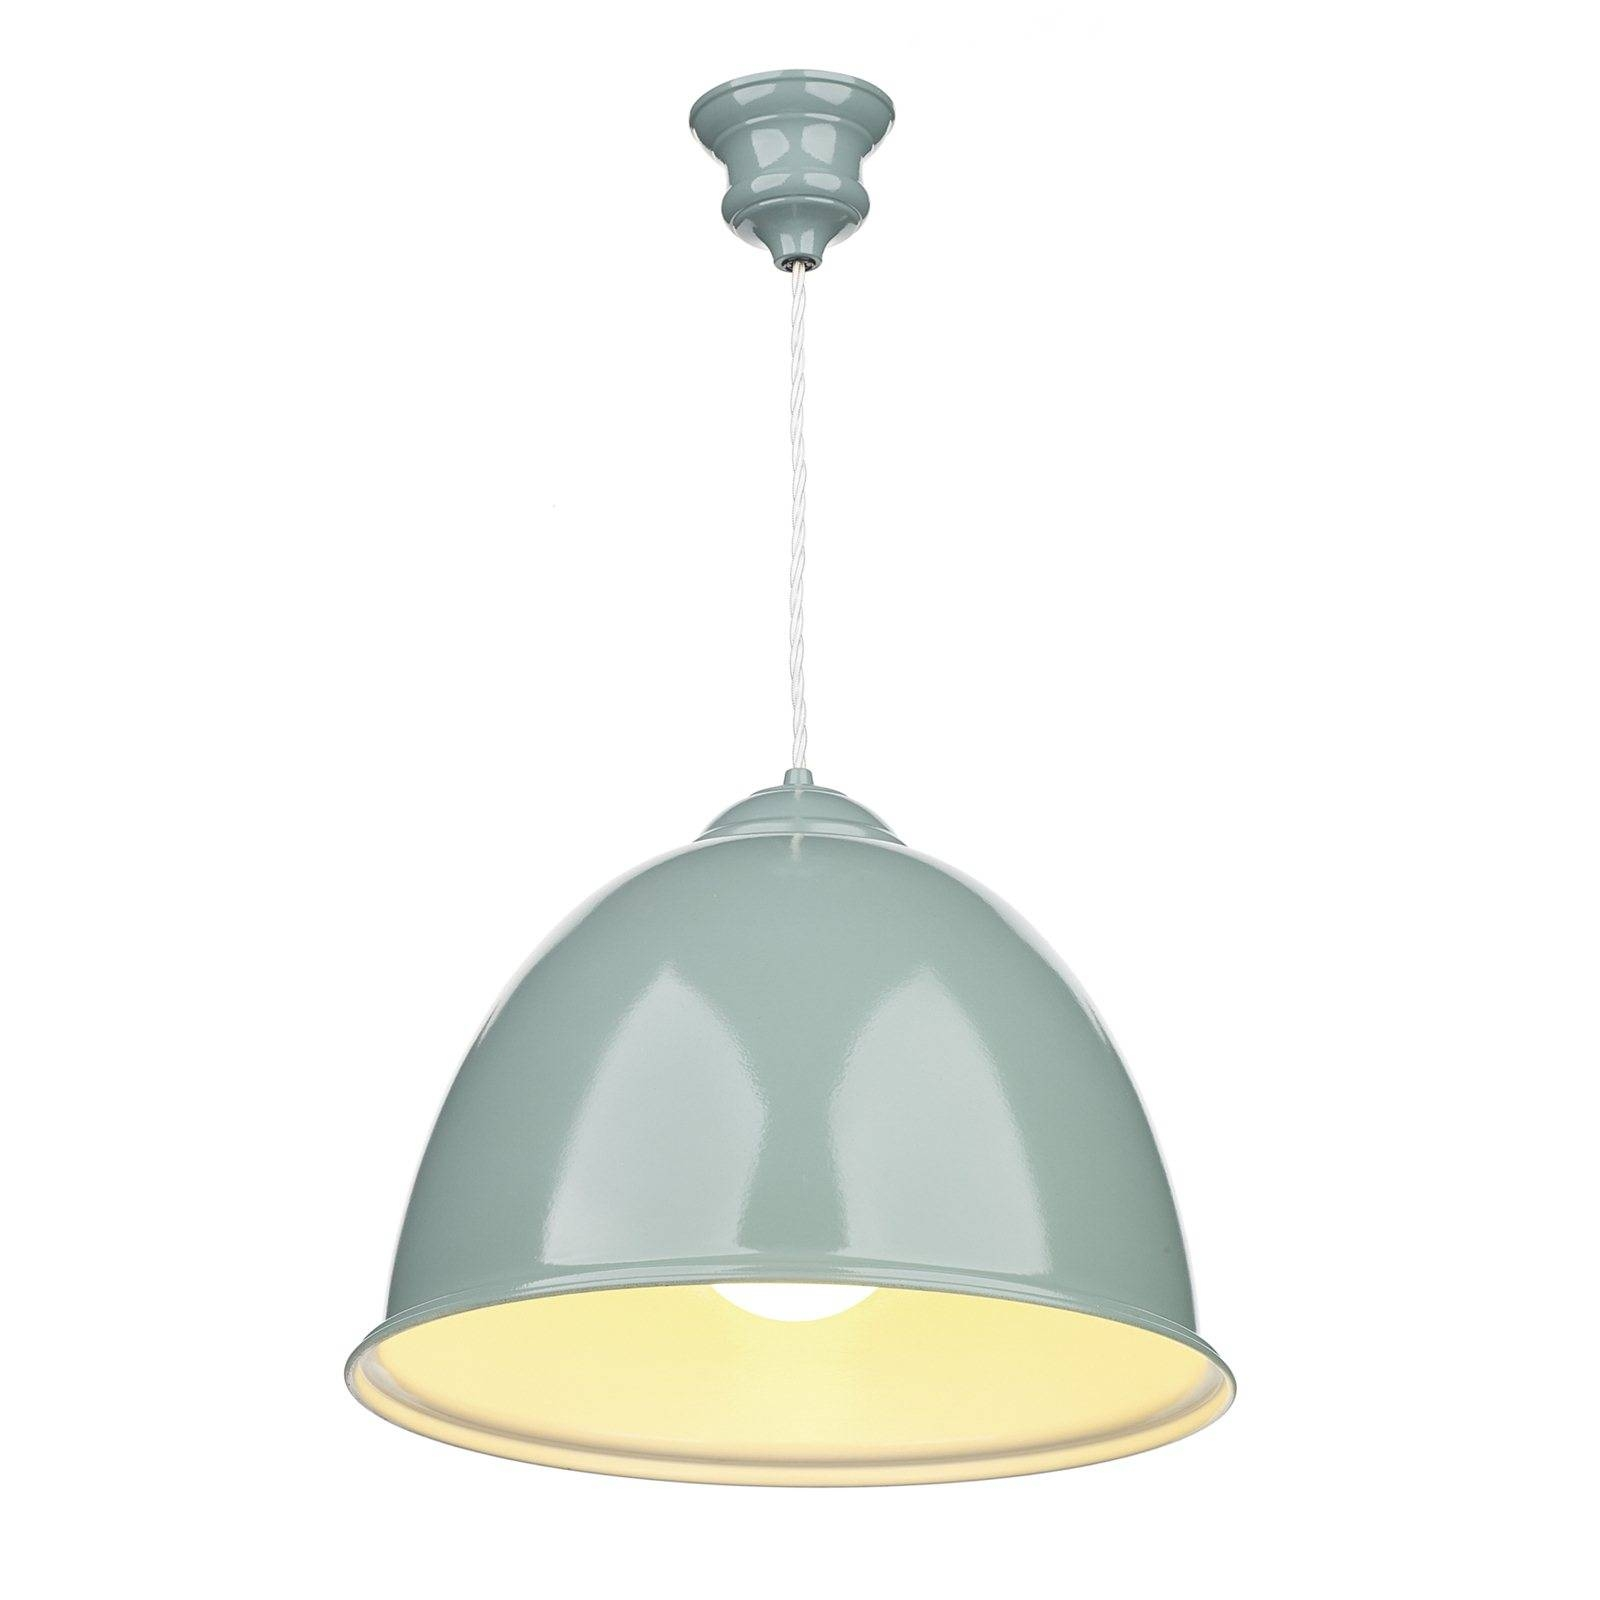 Hicks And Hicks Sennen Pendant Light Blue - Hicks & Hicks in Blue Pendant Lights (Image 10 of 15)